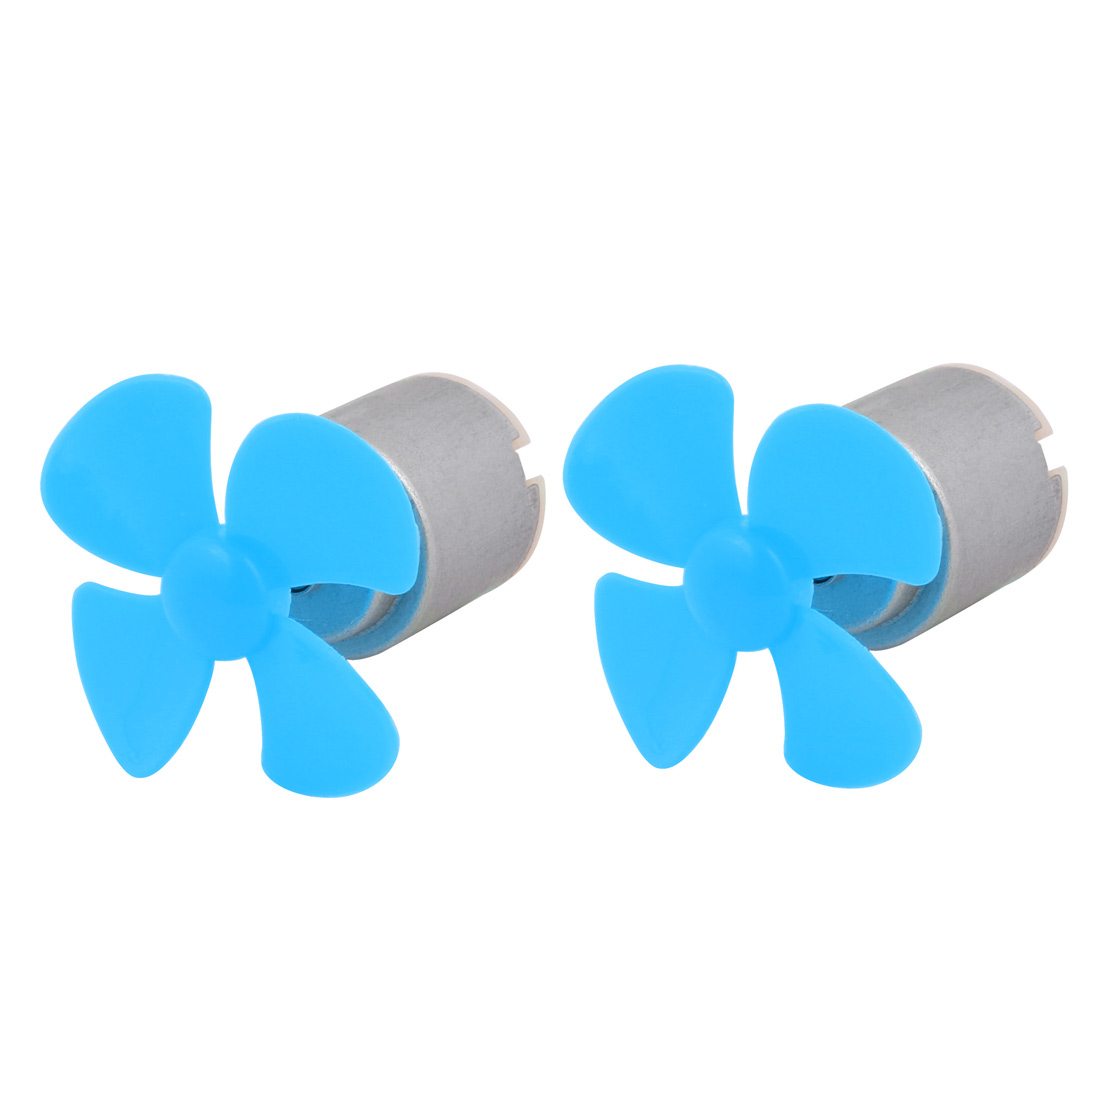 2Pcs DC 3V 0.15A 19500RPM Large Torque Motor 4-Vane 40mm Dia Propeller Blue for RC Model